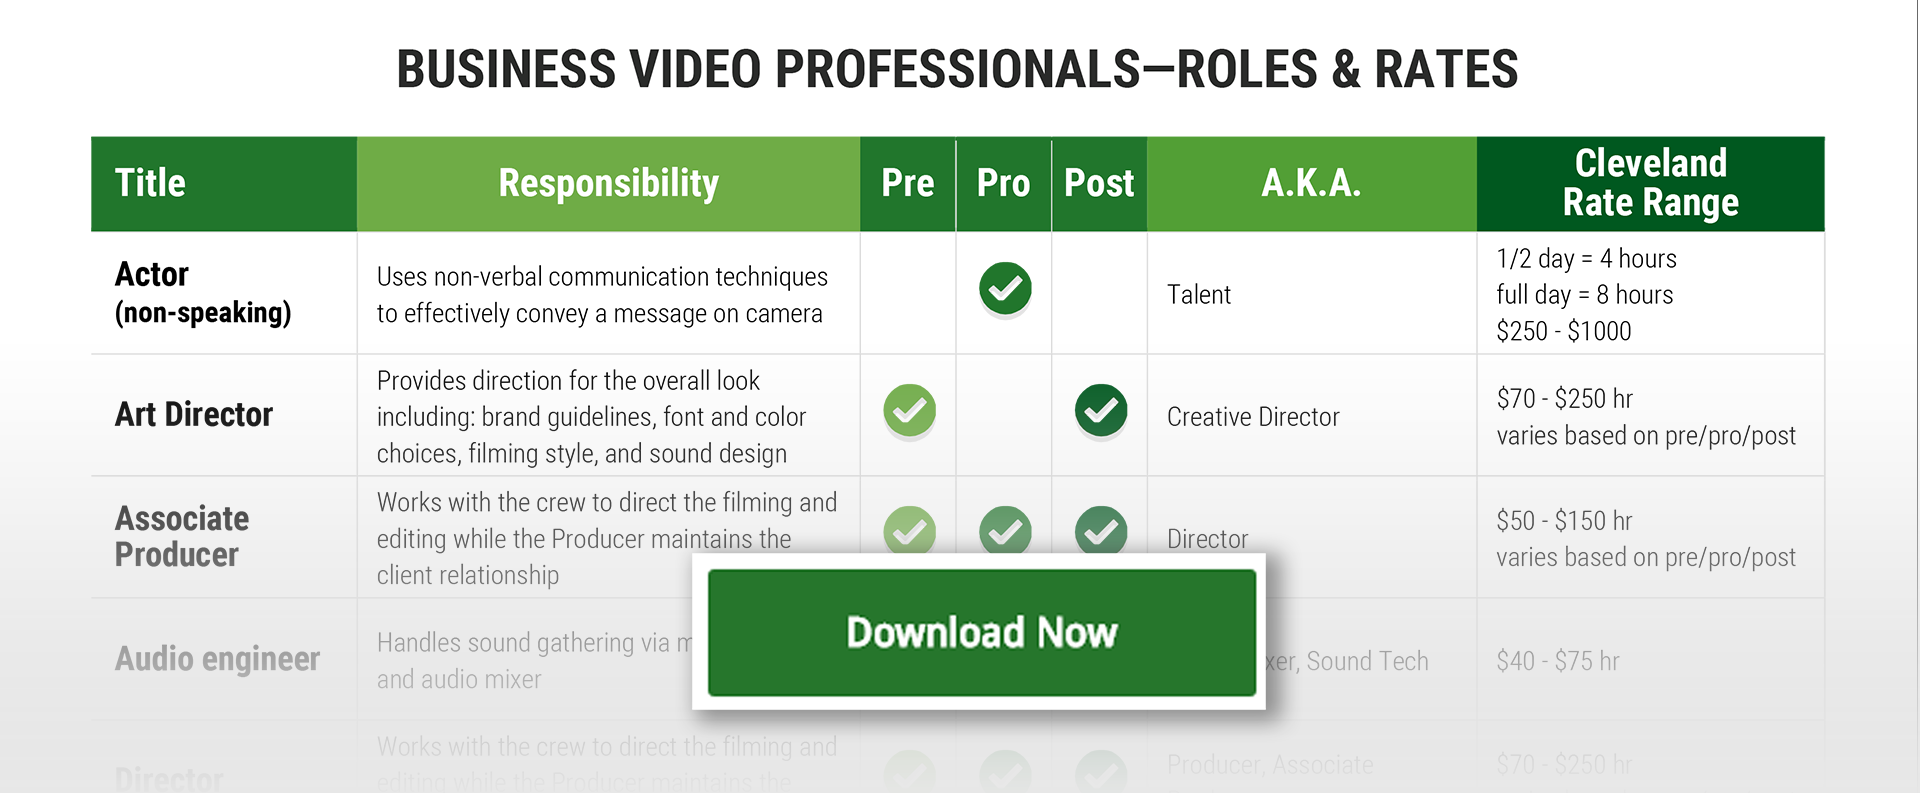 business video professionals - roles an rates guide